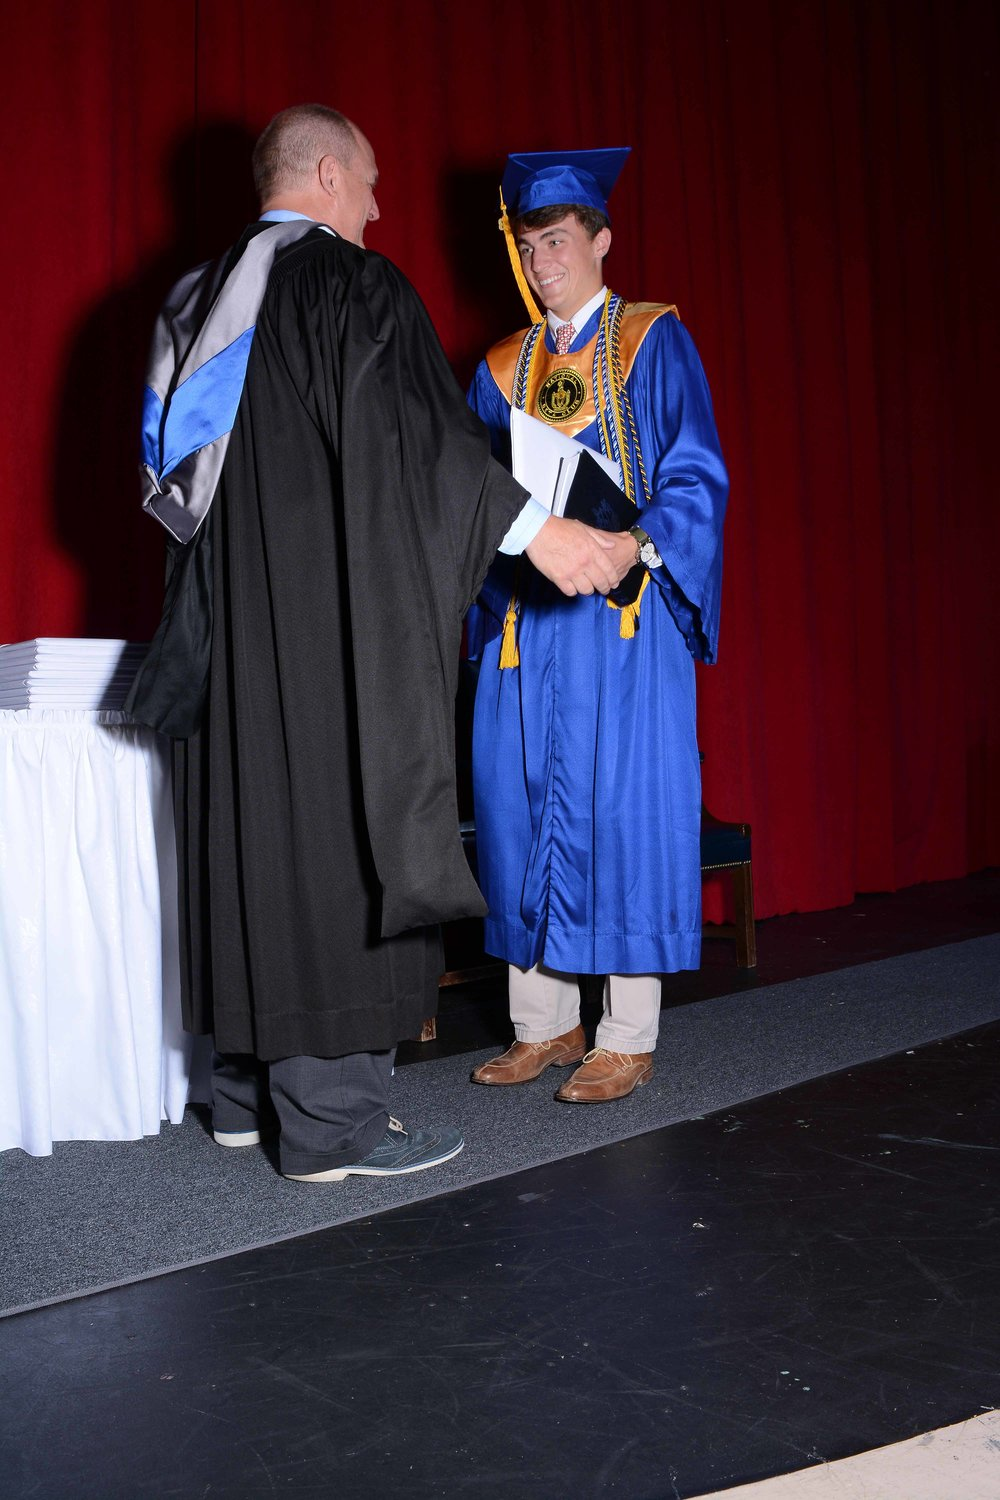 May14 Commencement64.jpg